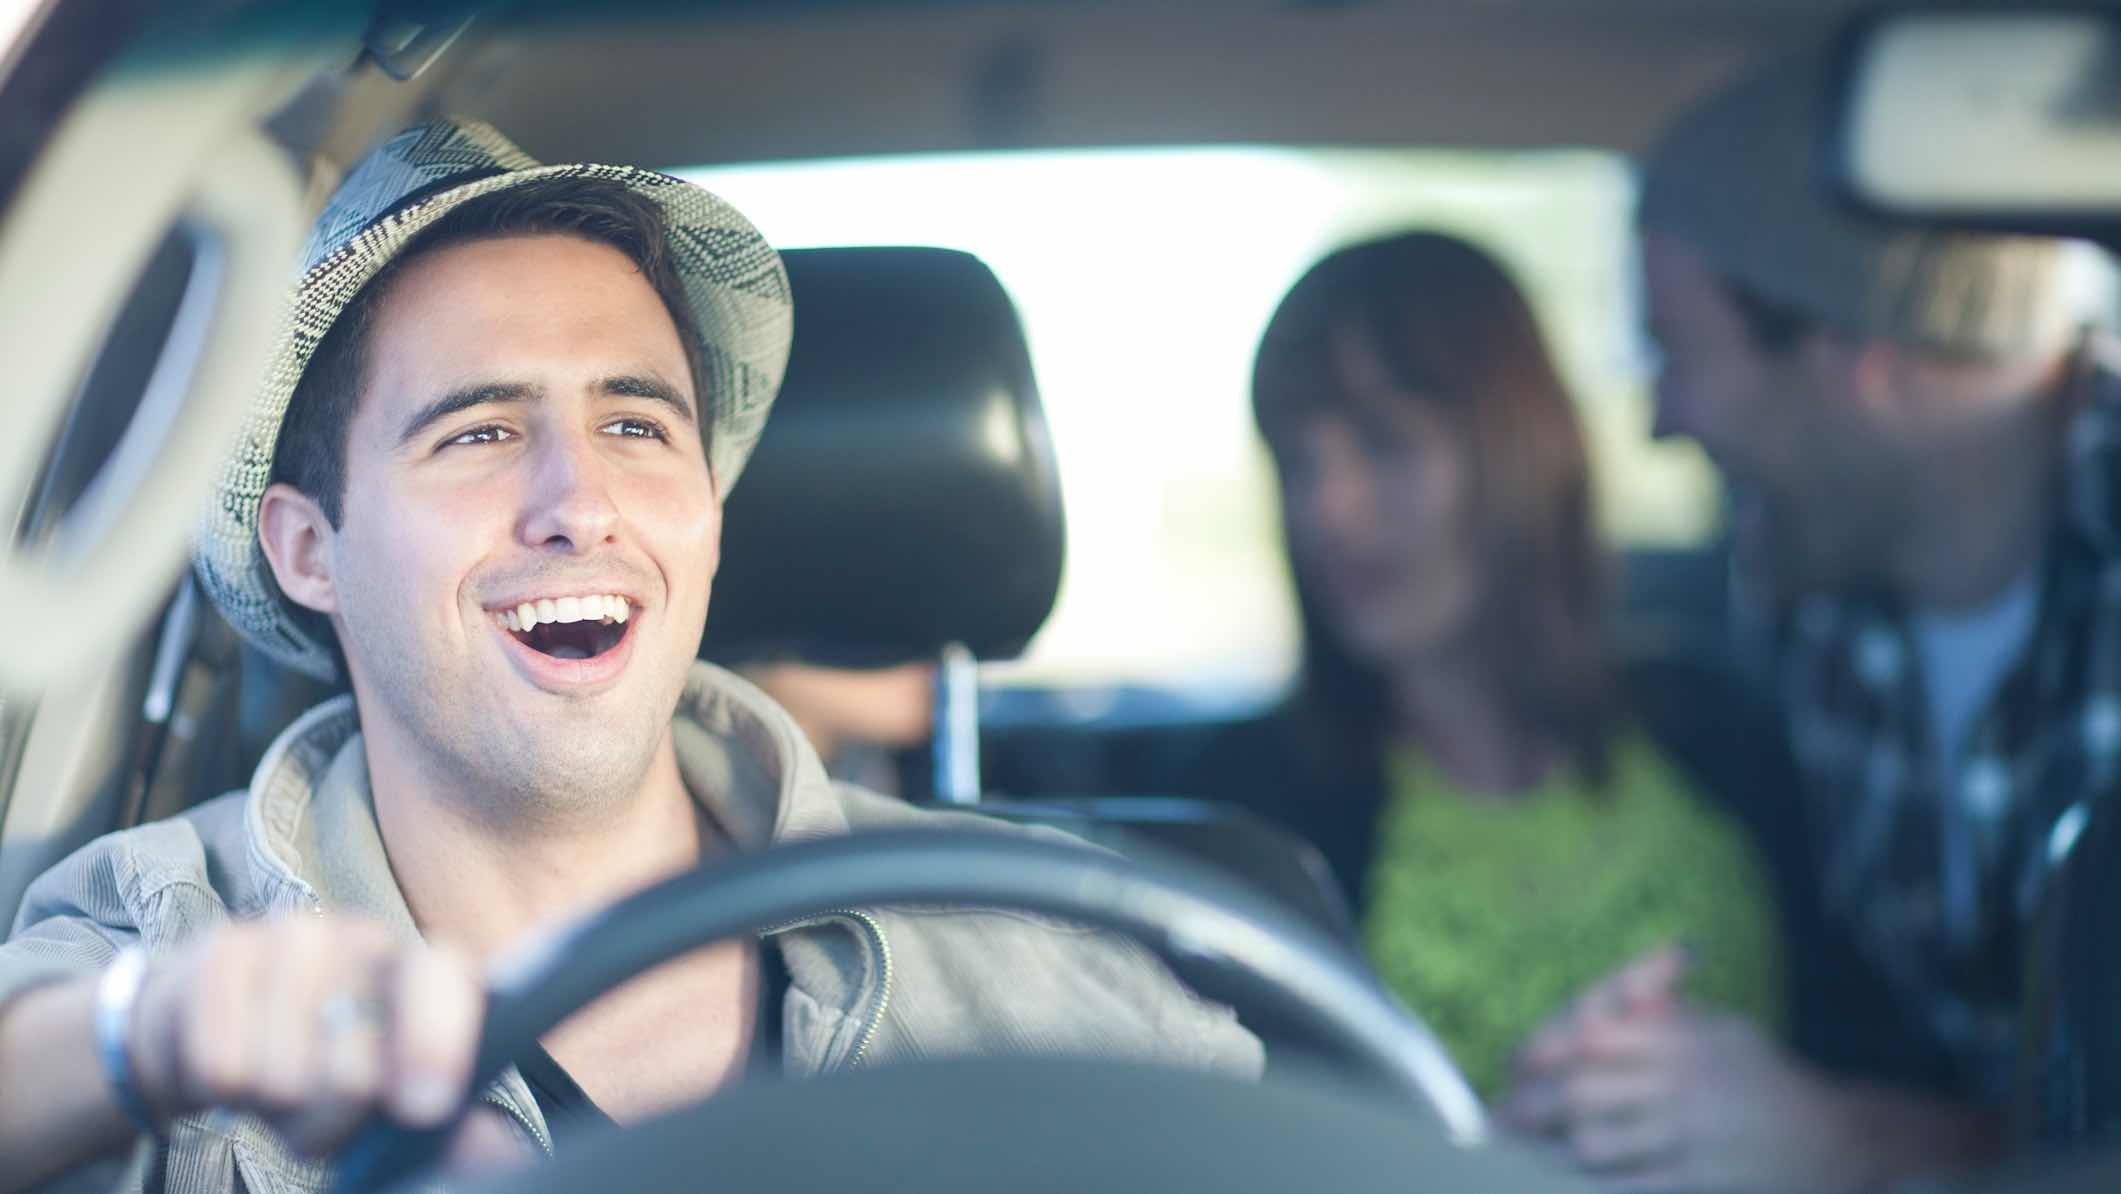 Driver in car happy with insurance features